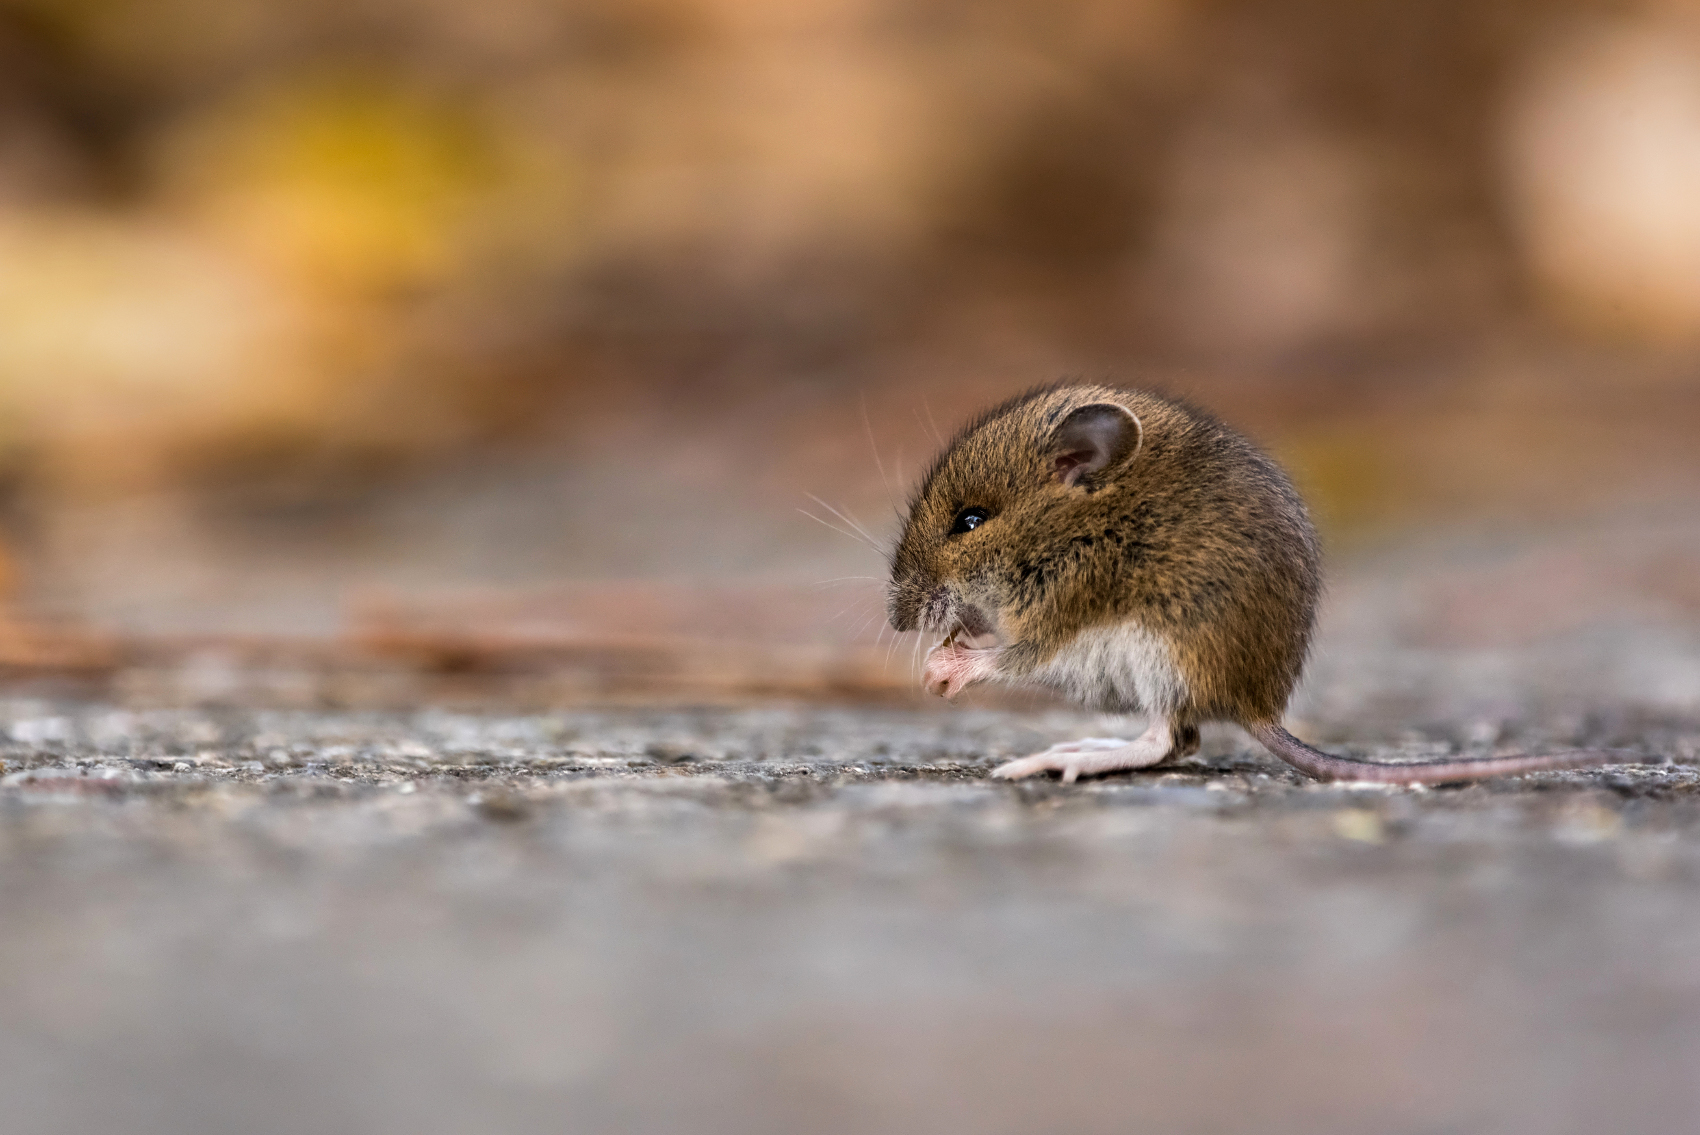 Juvenile Wood Mouse